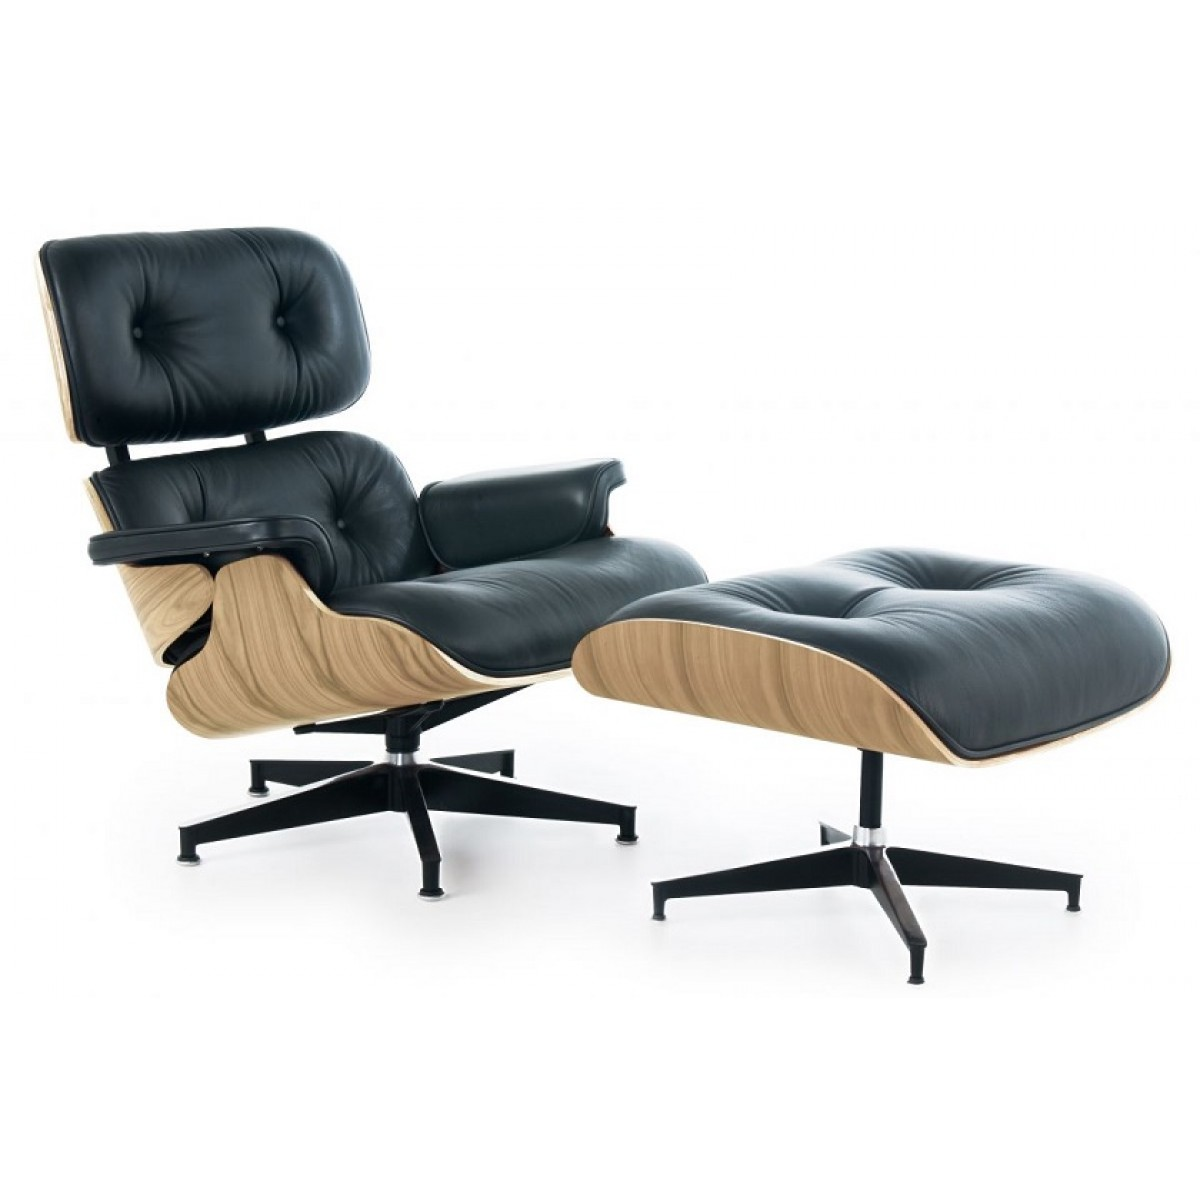 eames style lounge chair and ottoman black leather oak plywood. Black Bedroom Furniture Sets. Home Design Ideas